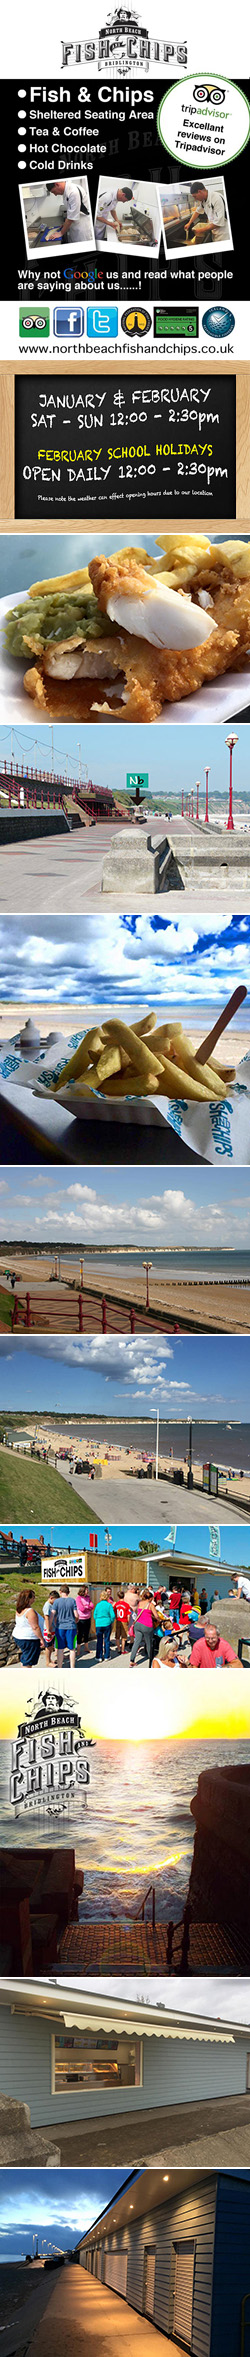 North Beach Fish & Chips | Bridlington